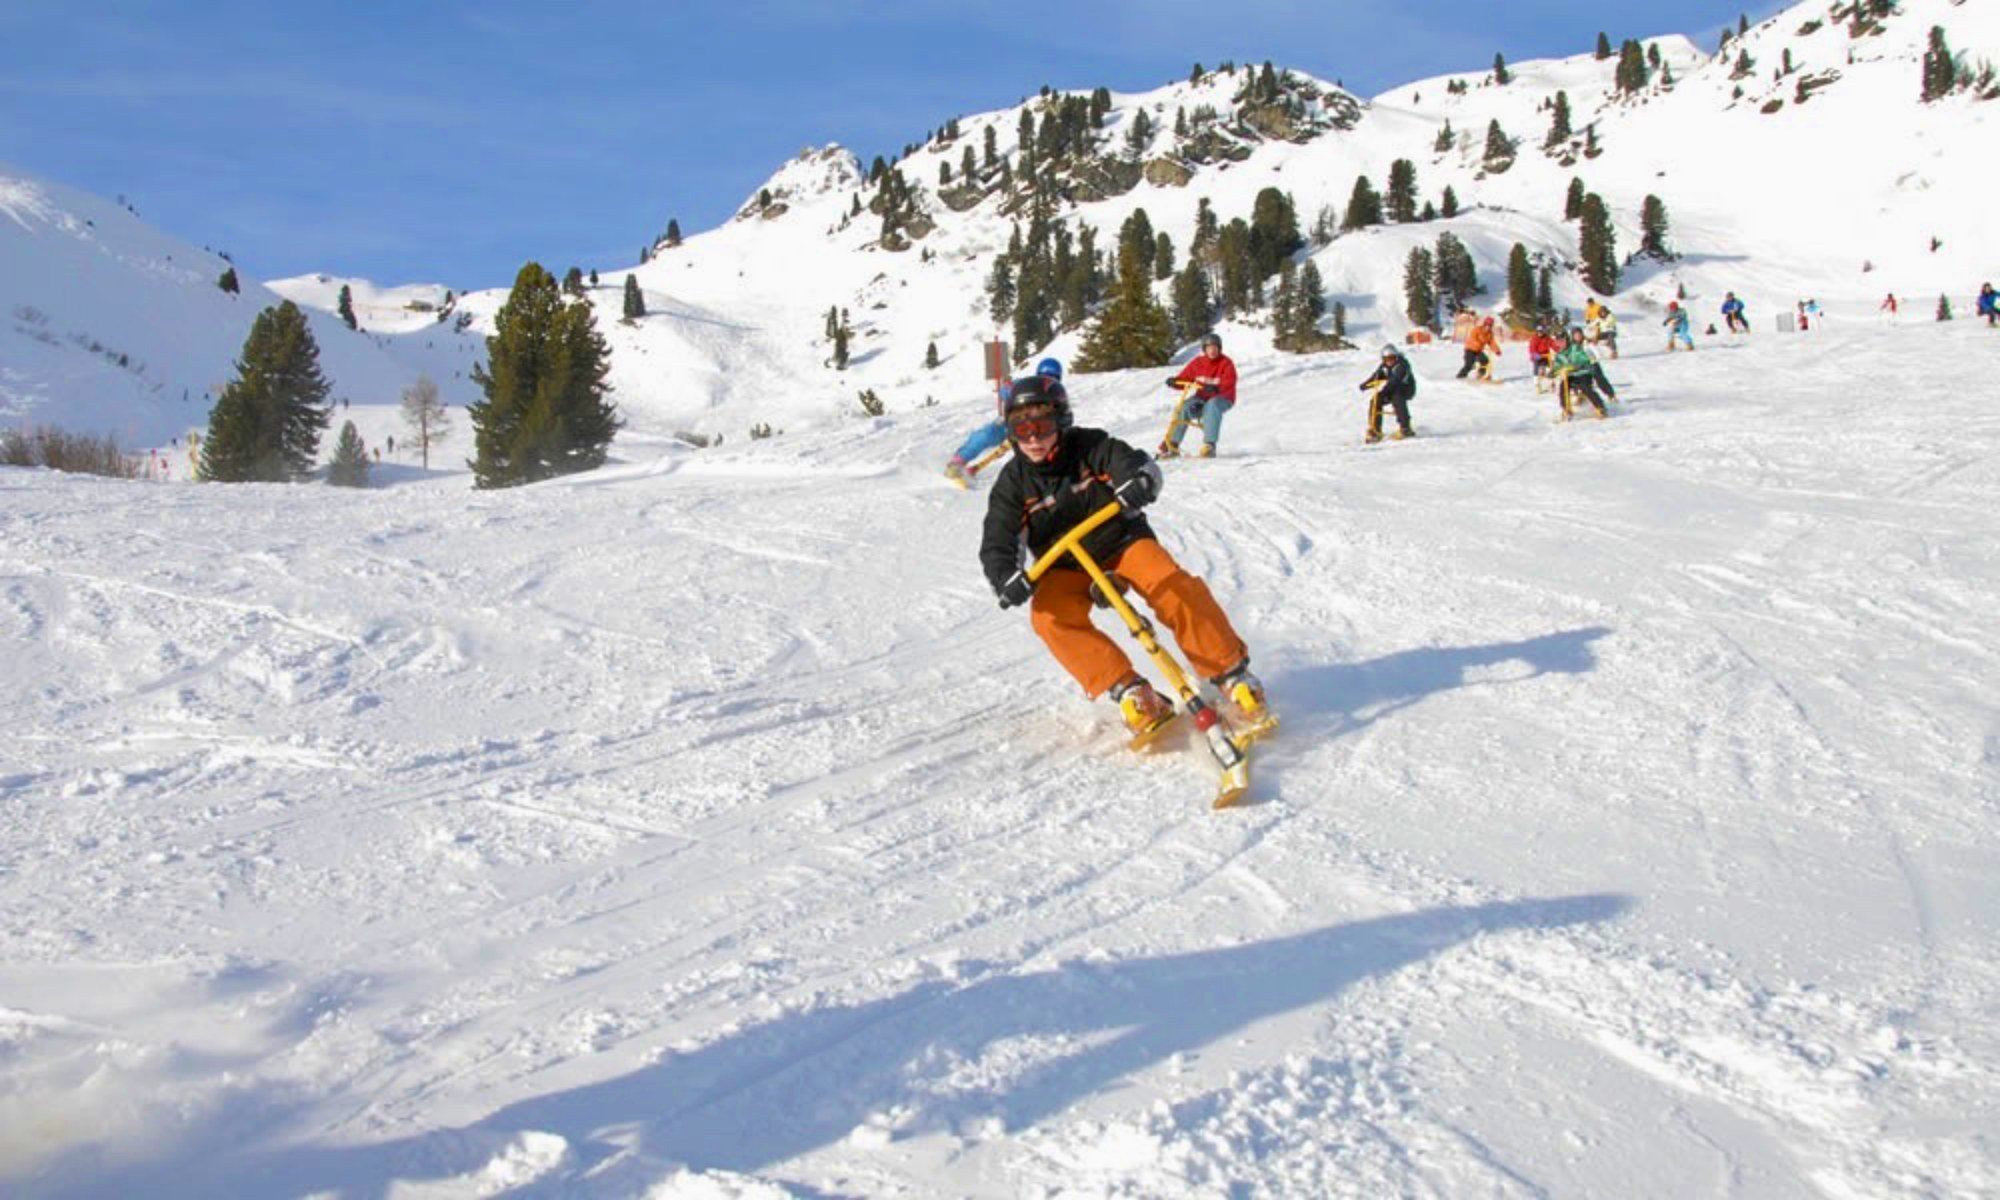 Snowbikers on snowy slopes.